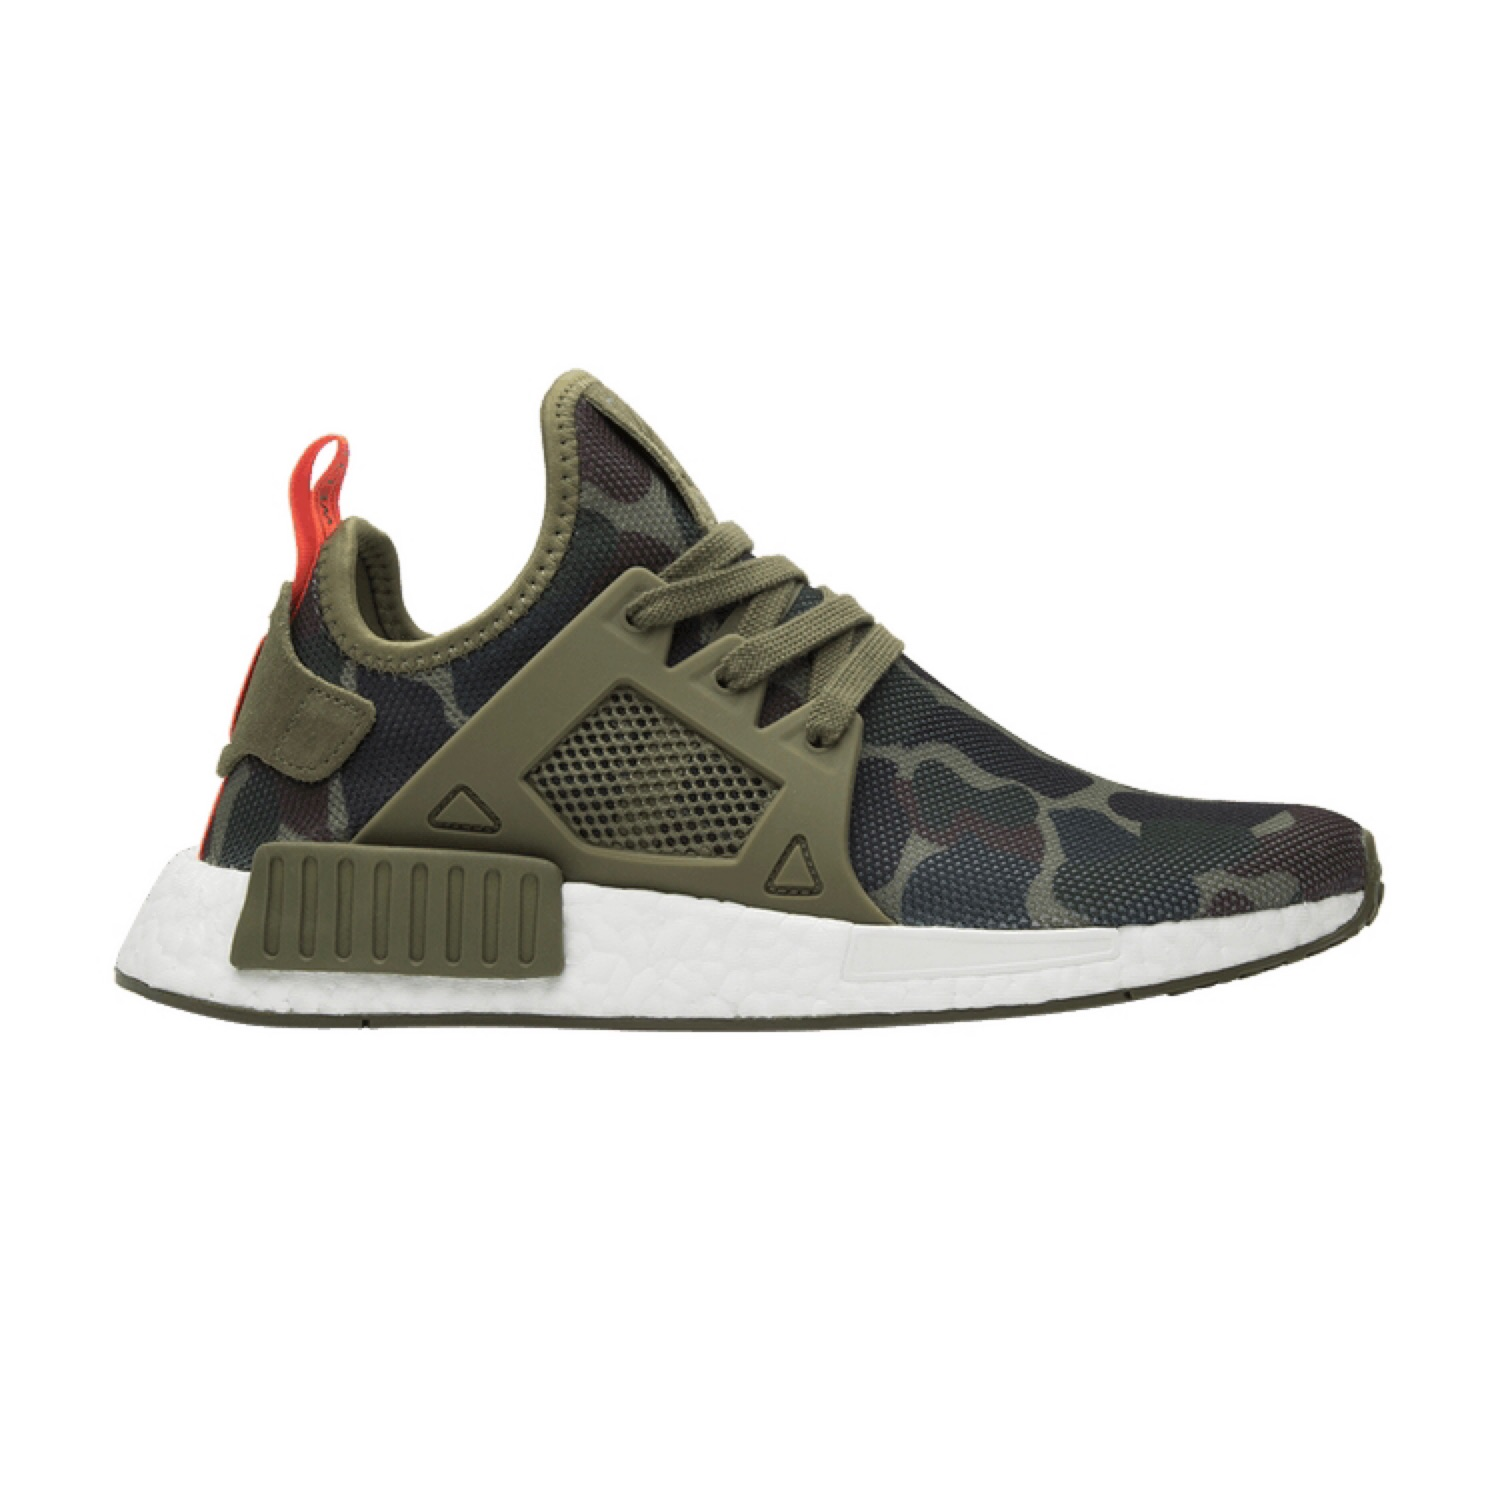 sports shoes 6ac4d a920f Adidas Nmd Xr1 Duck Camo Pack Olive Cargo!